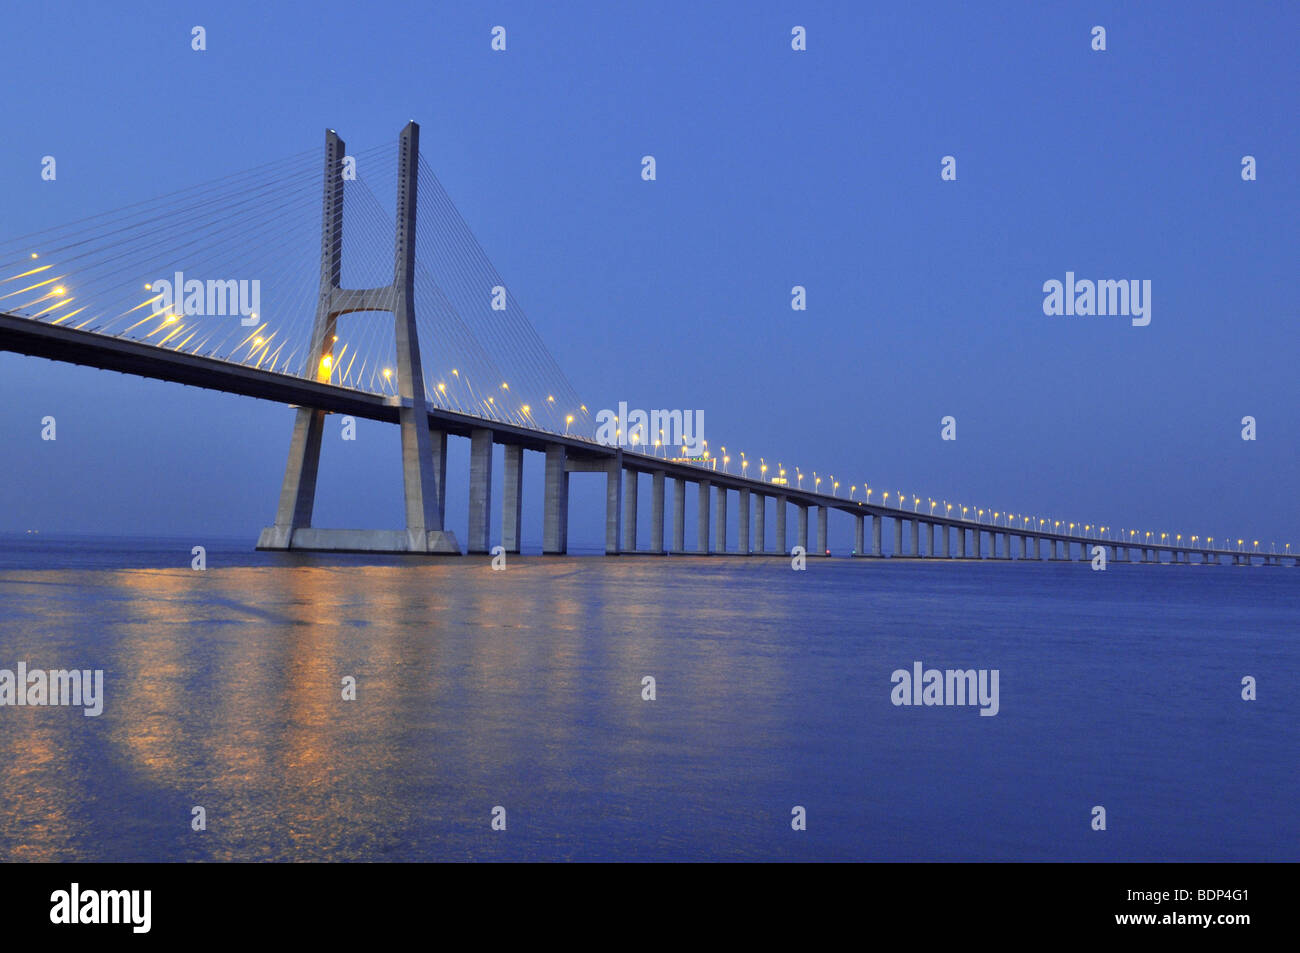 Vasco da Gama bridge over the Rio Tejo river in the Parque das Nações park, site of the Expo 98, Lisbon, Portugal, Stock Photo